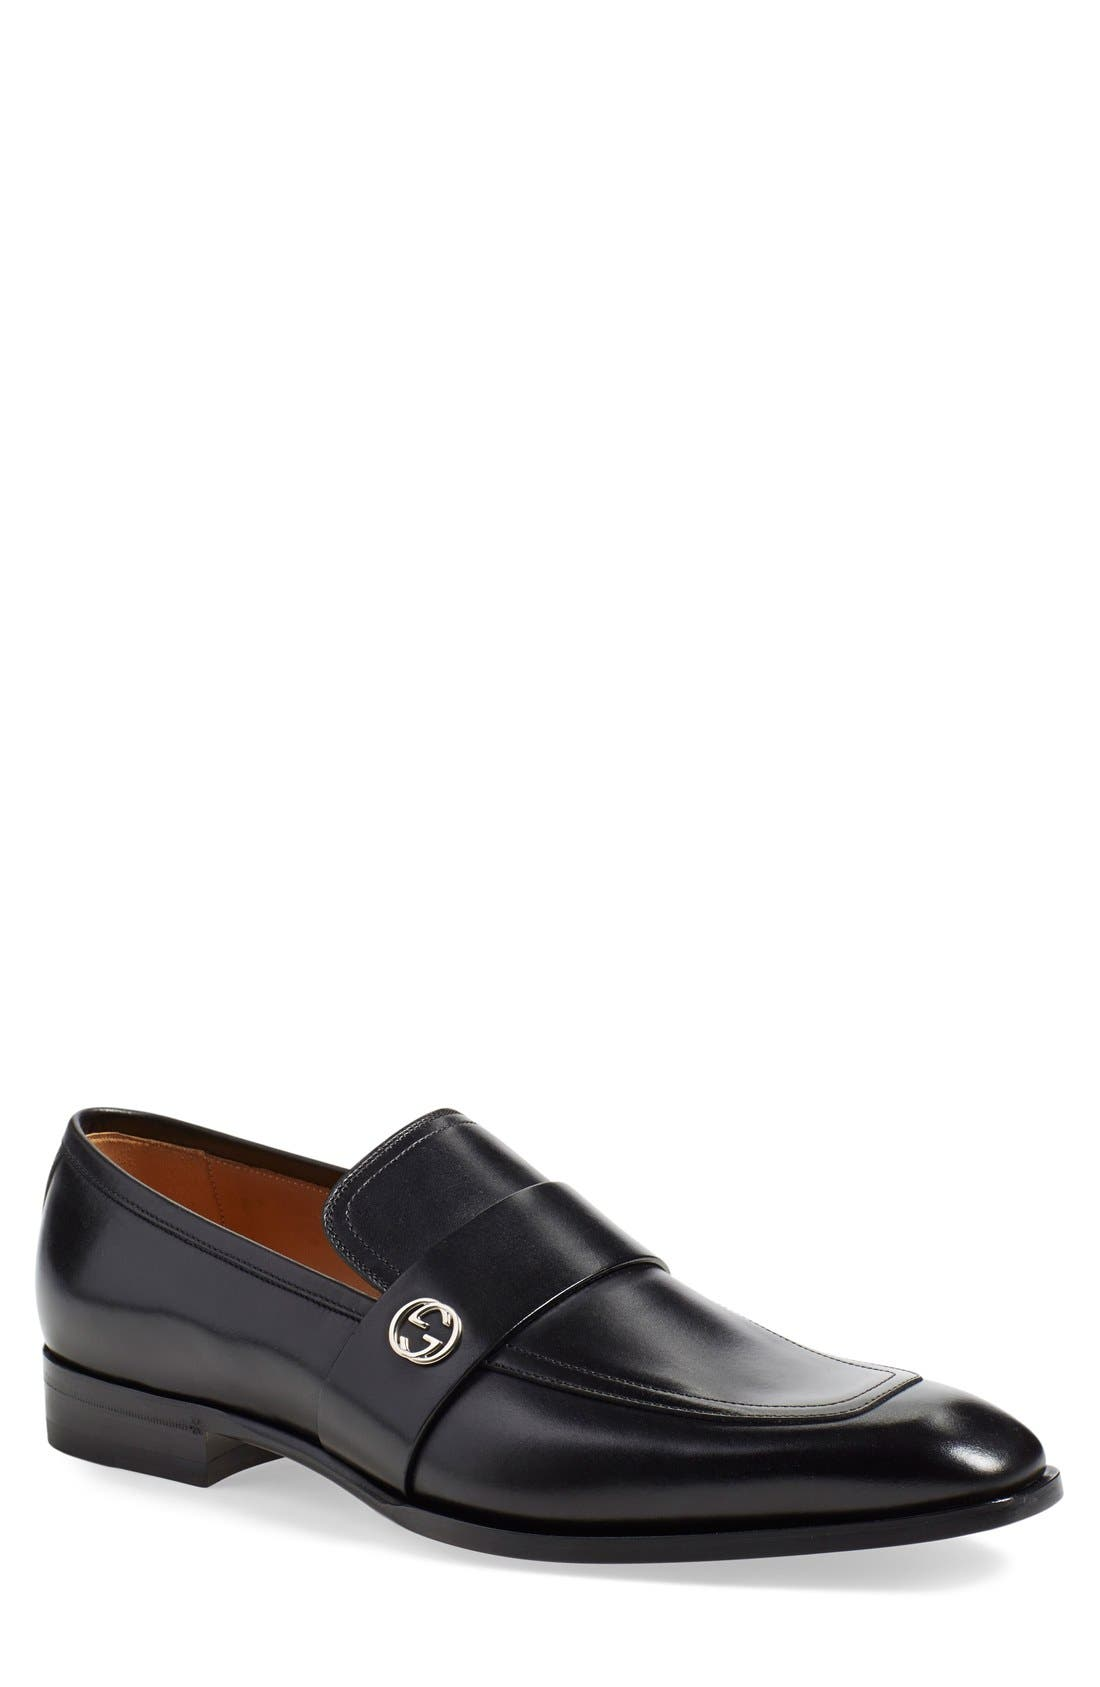 'Broadwick' Loafer,                             Main thumbnail 1, color,                             001